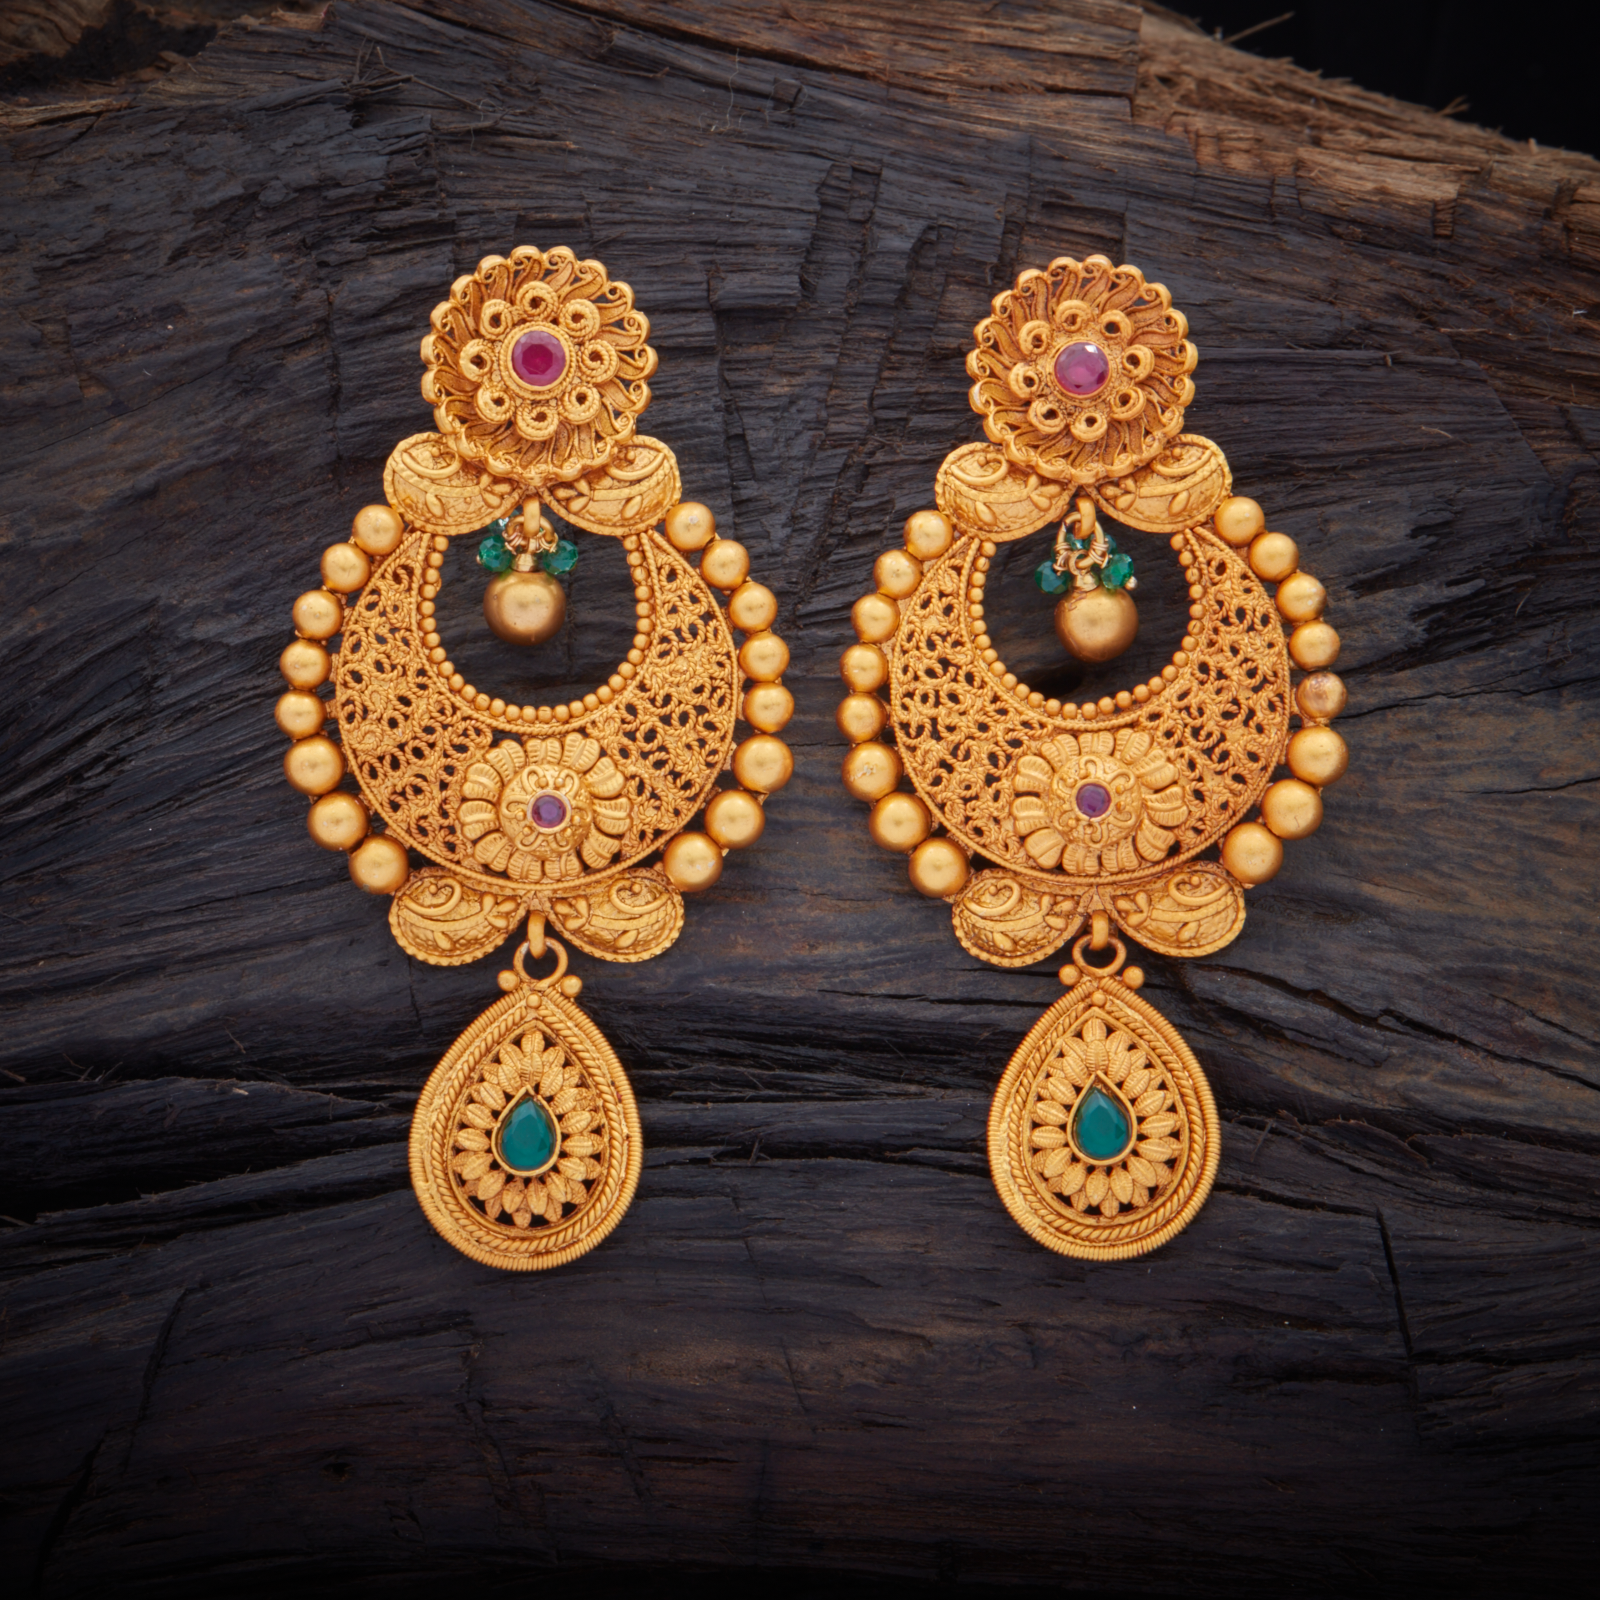 Traditional Designed Antique Hanging earrings studded with.